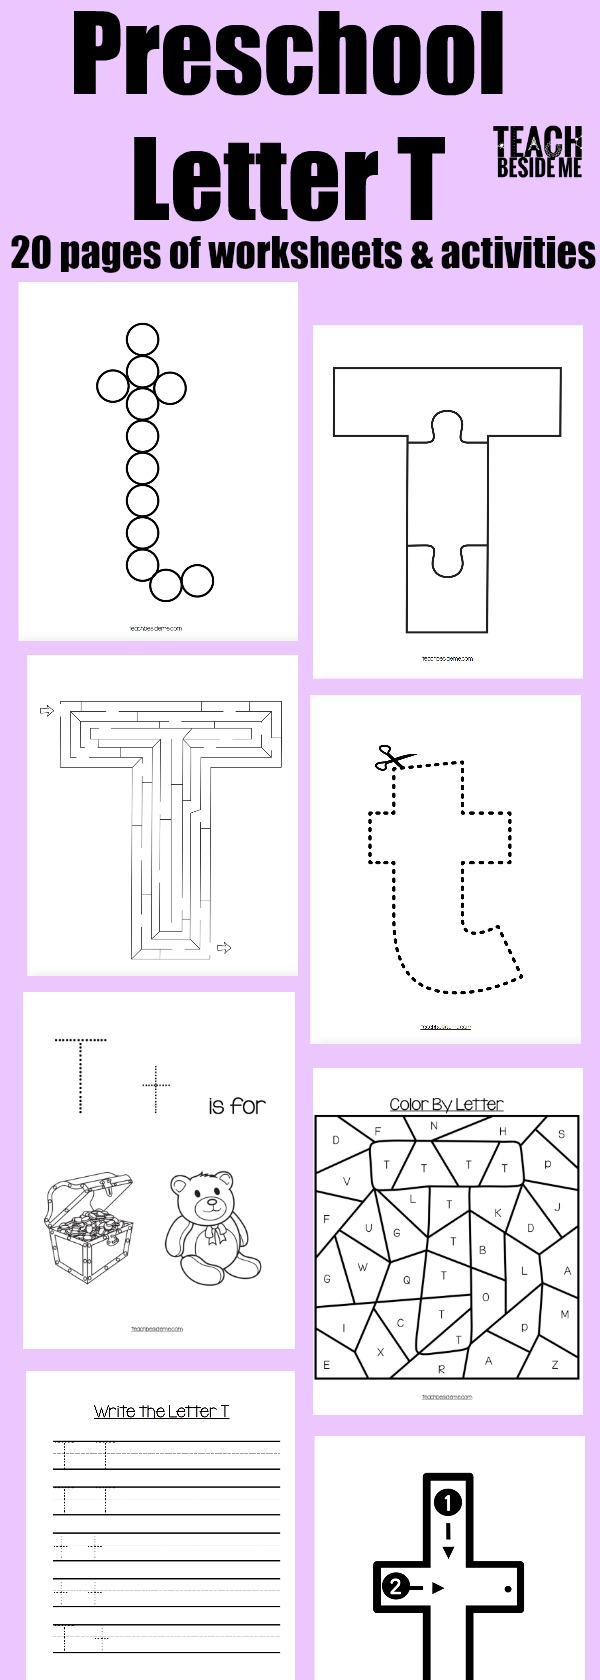 preschool letter T worksheets and activities